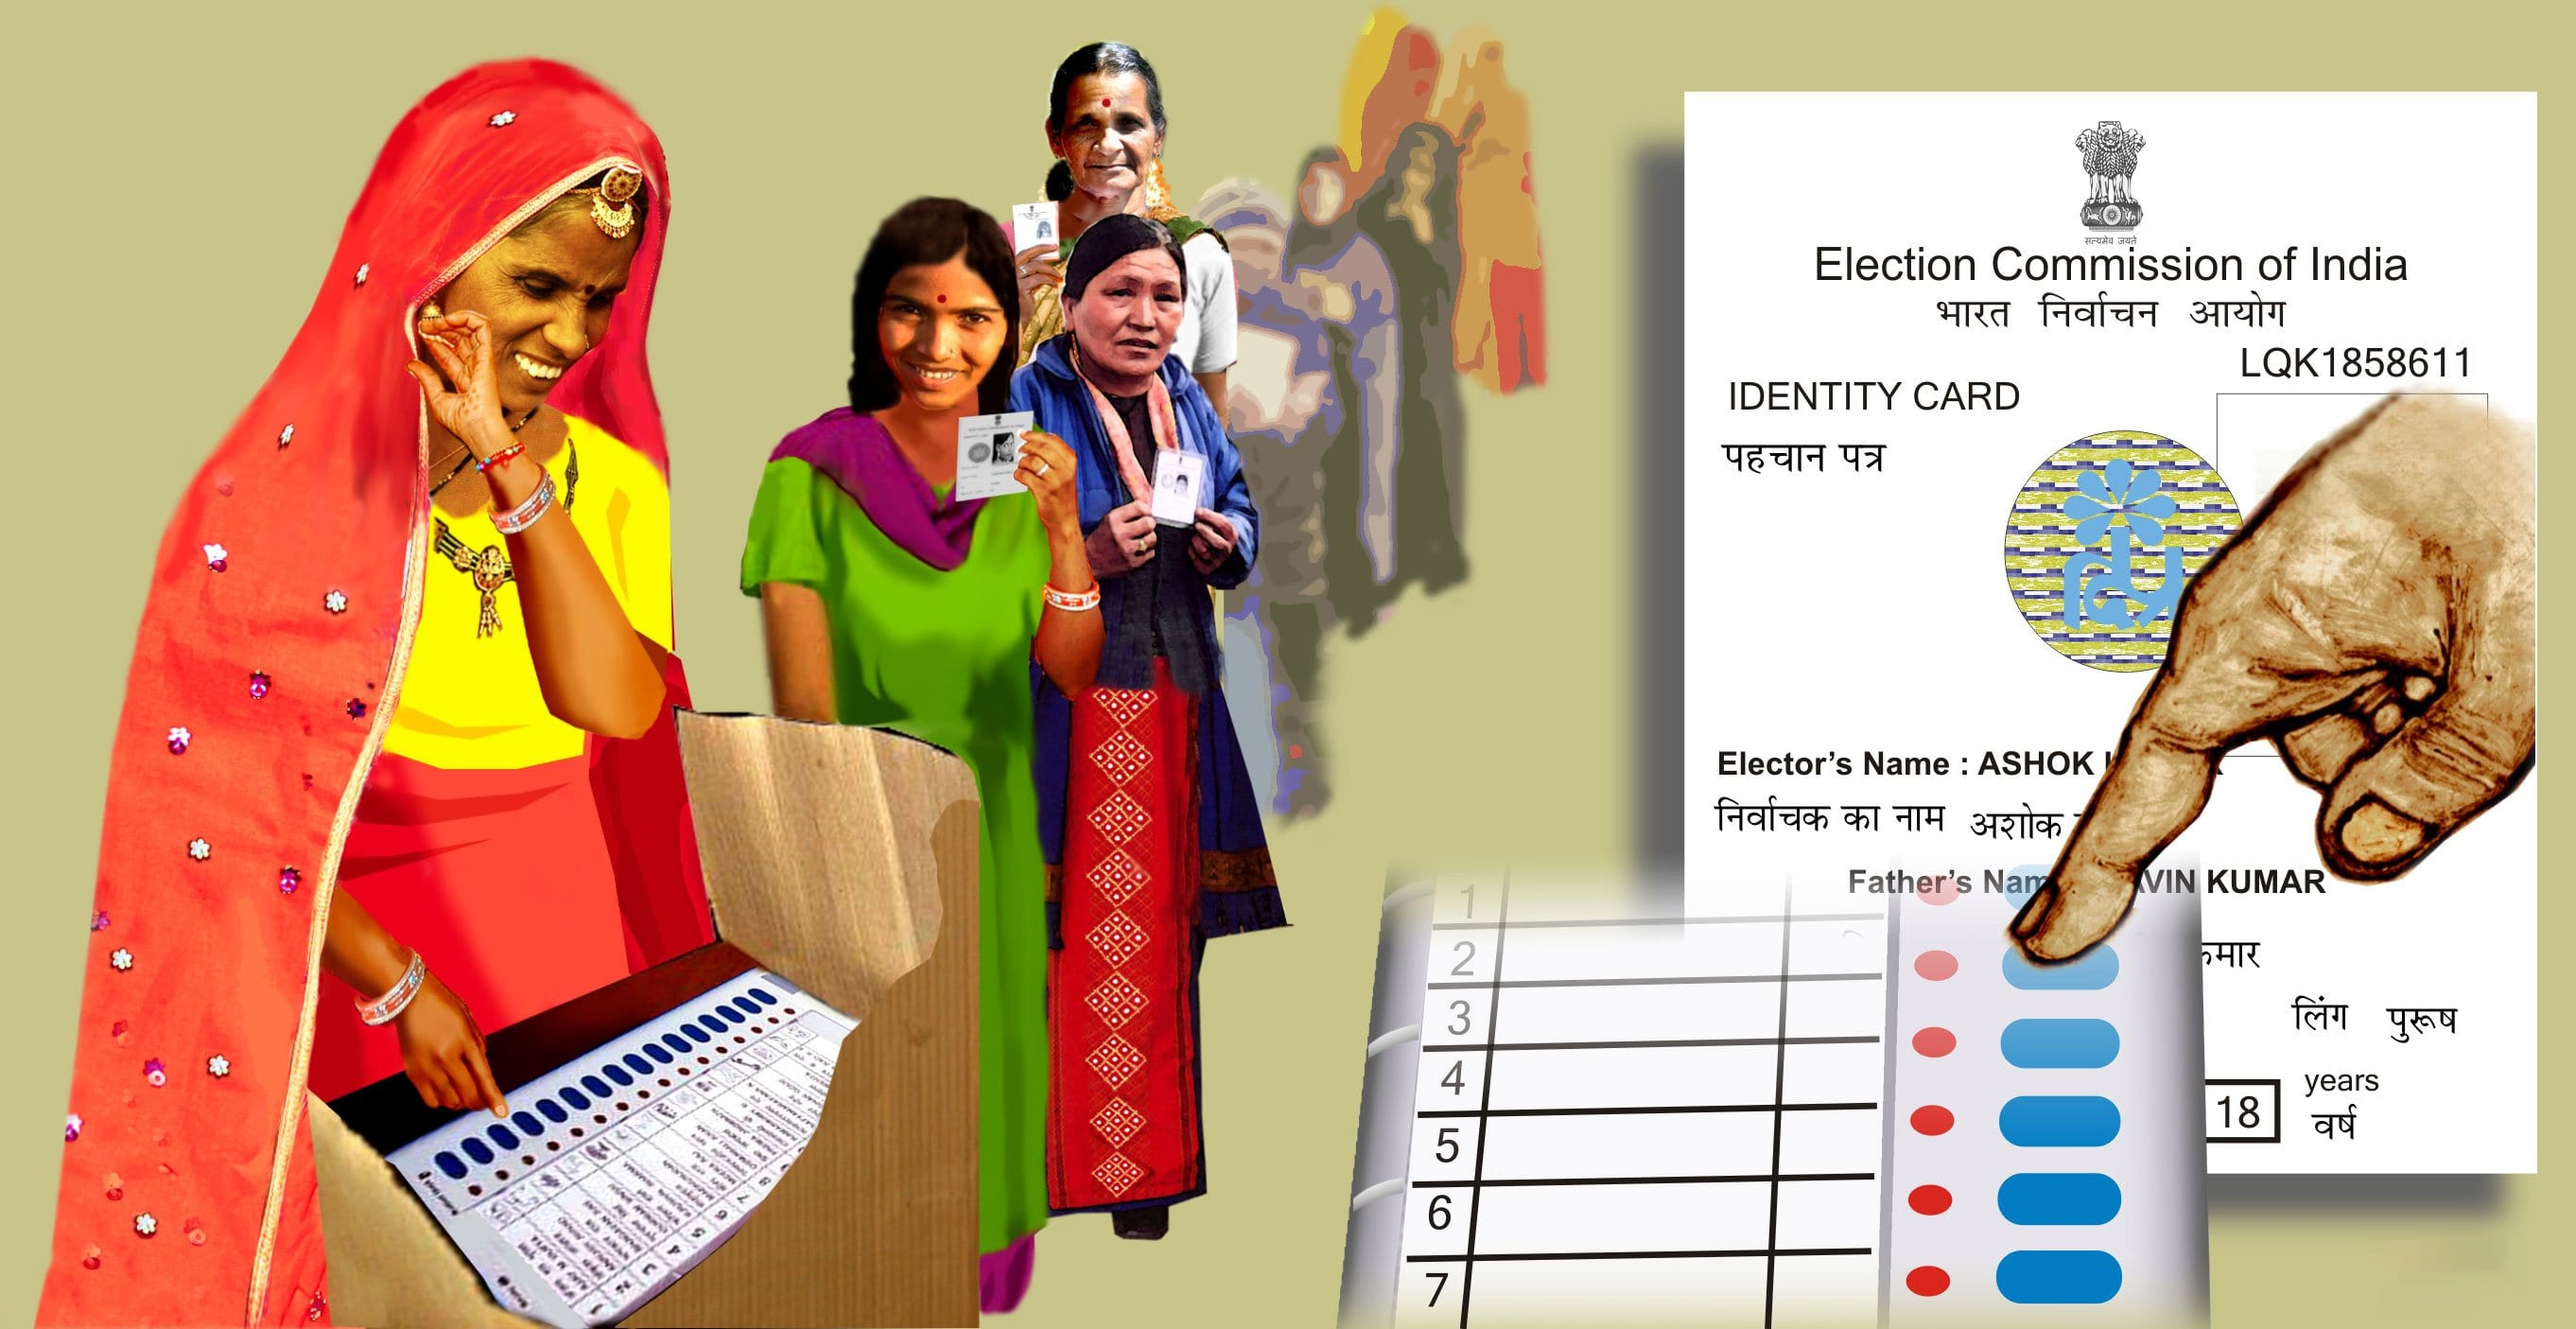 Representative image of people voting